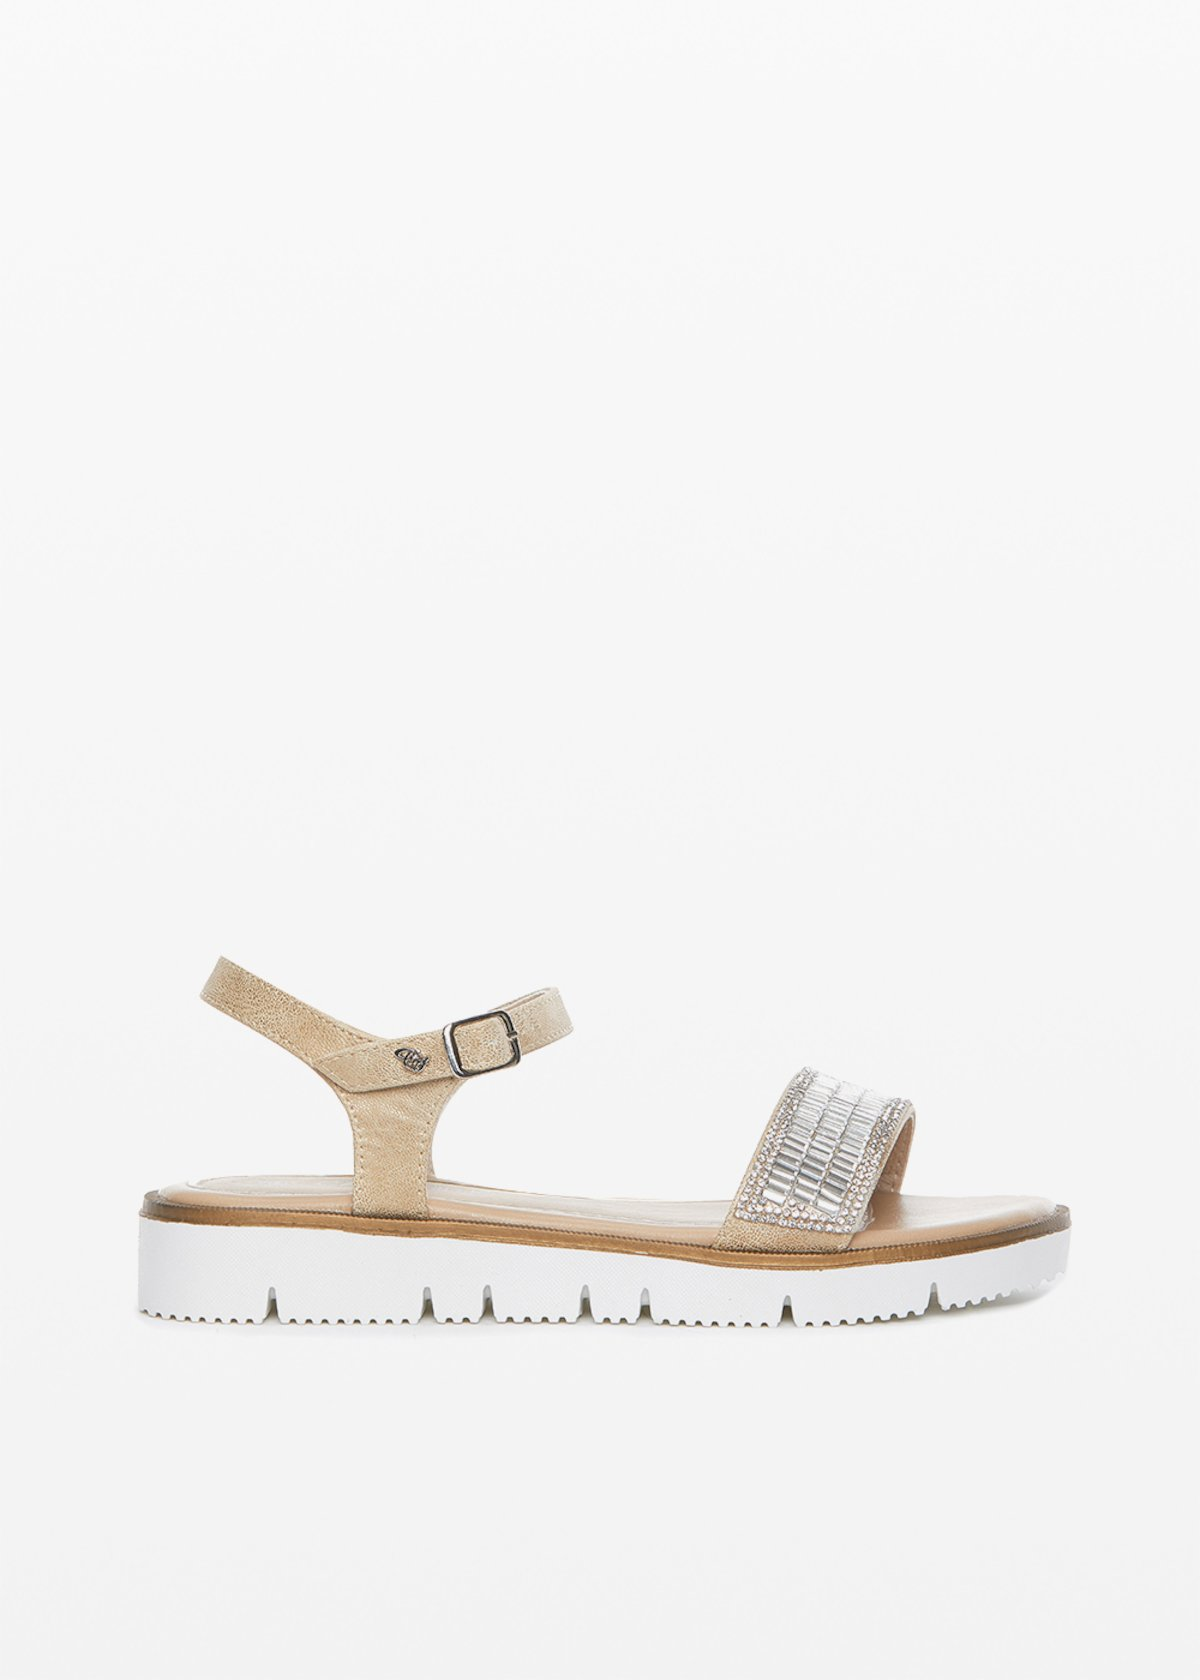 Shilin crystal detail low sandals - Light Beige - Woman